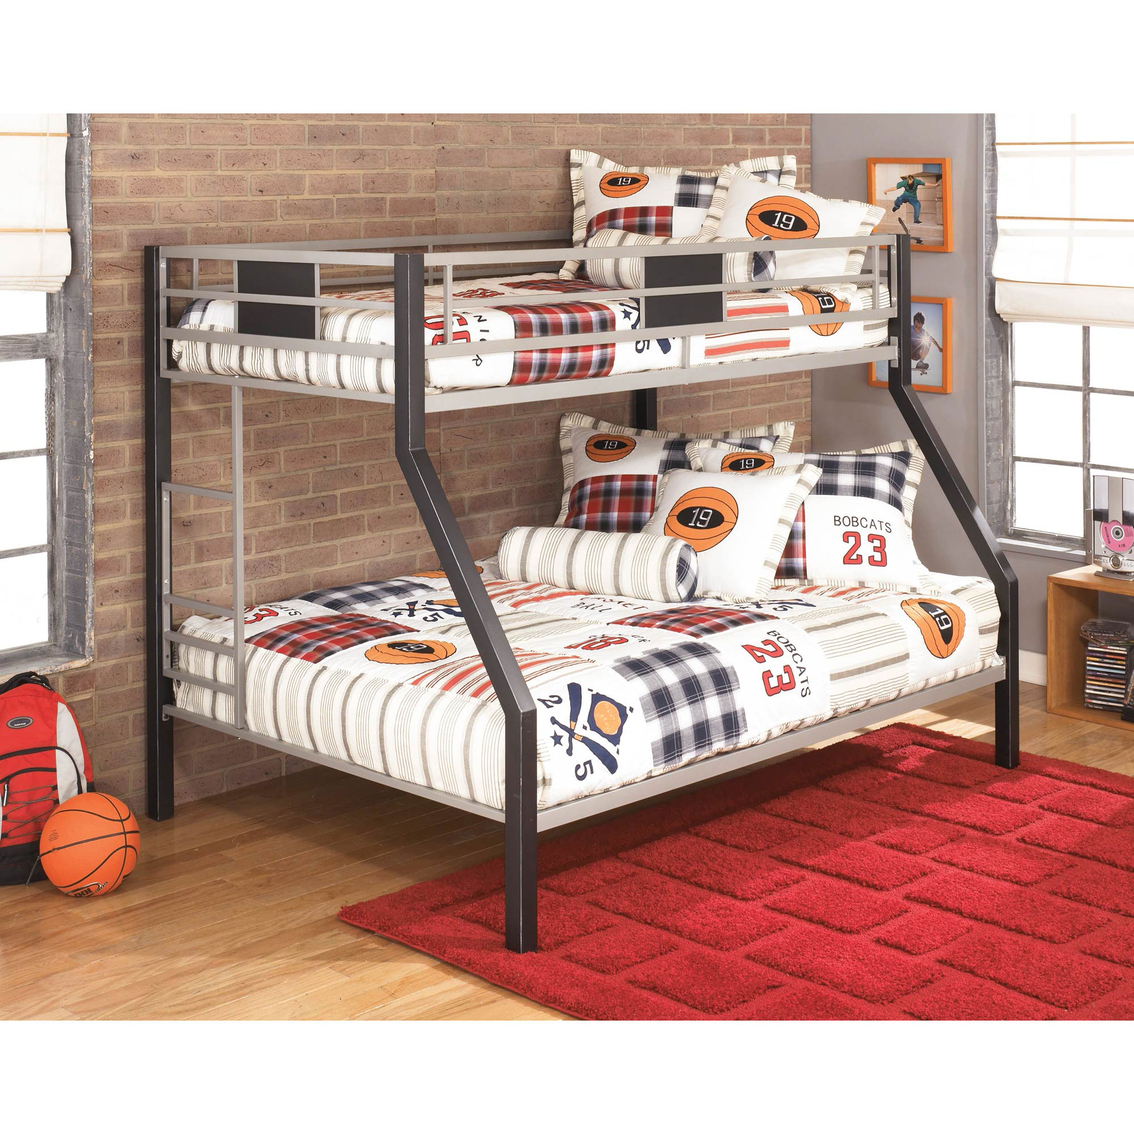 Signature Design By Ashley Dinsmore Twin Full Metal Bunk Bed Beds Home Appliances Shop